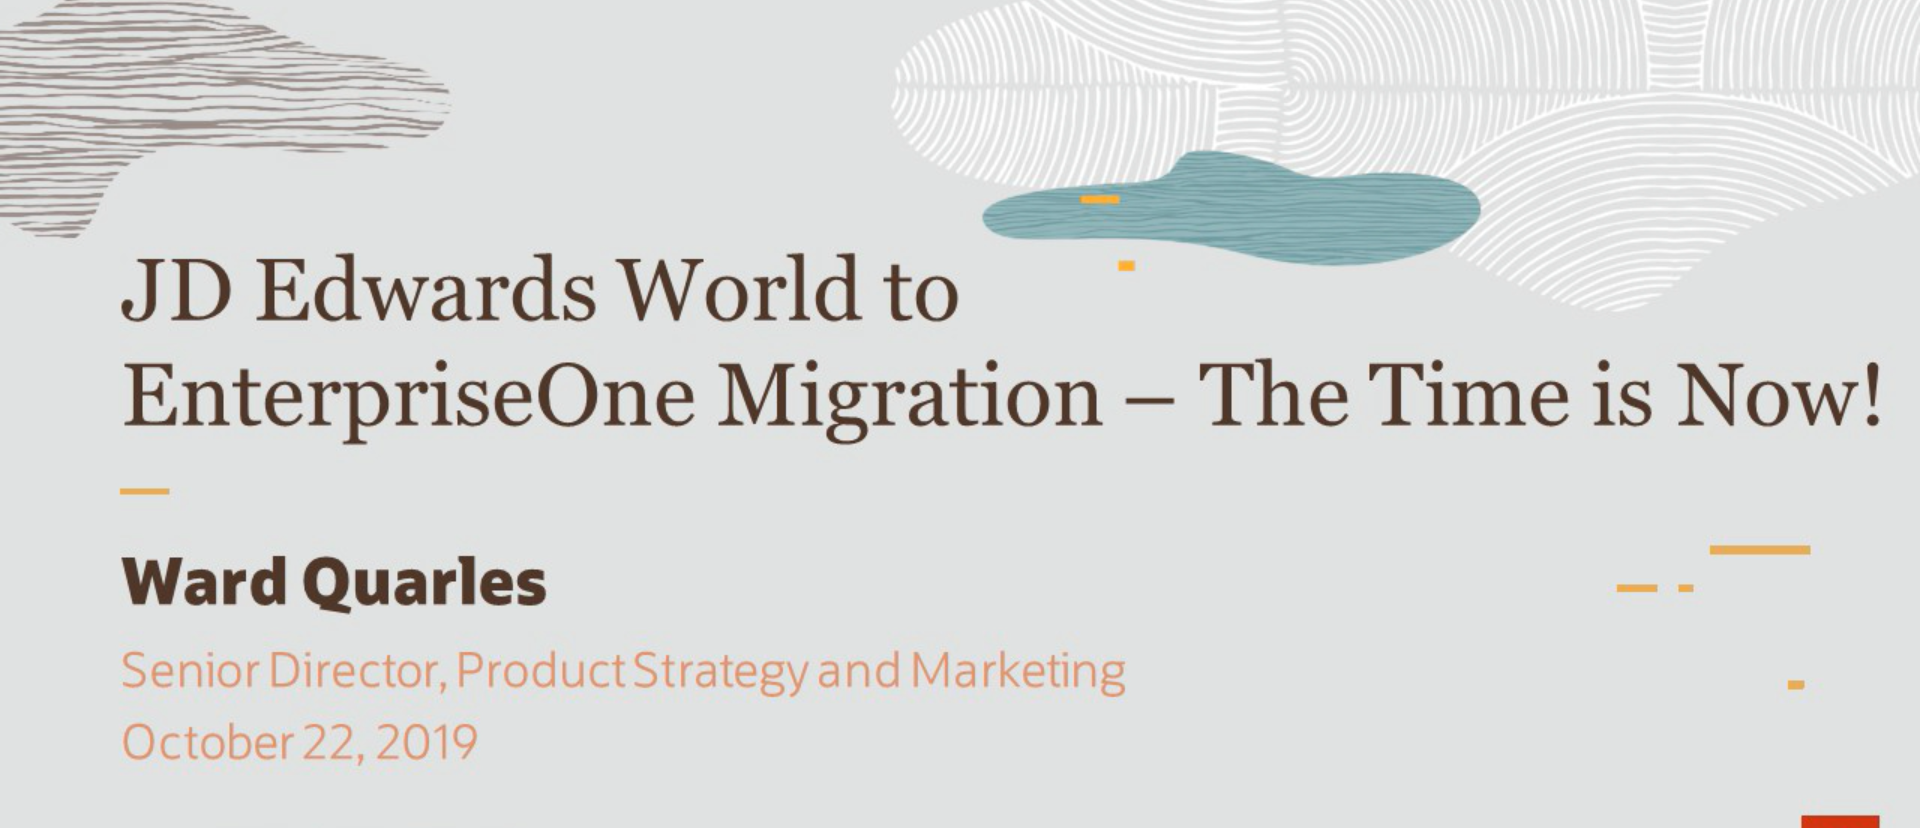 JD Edwards World to EnterpriseOne Migration